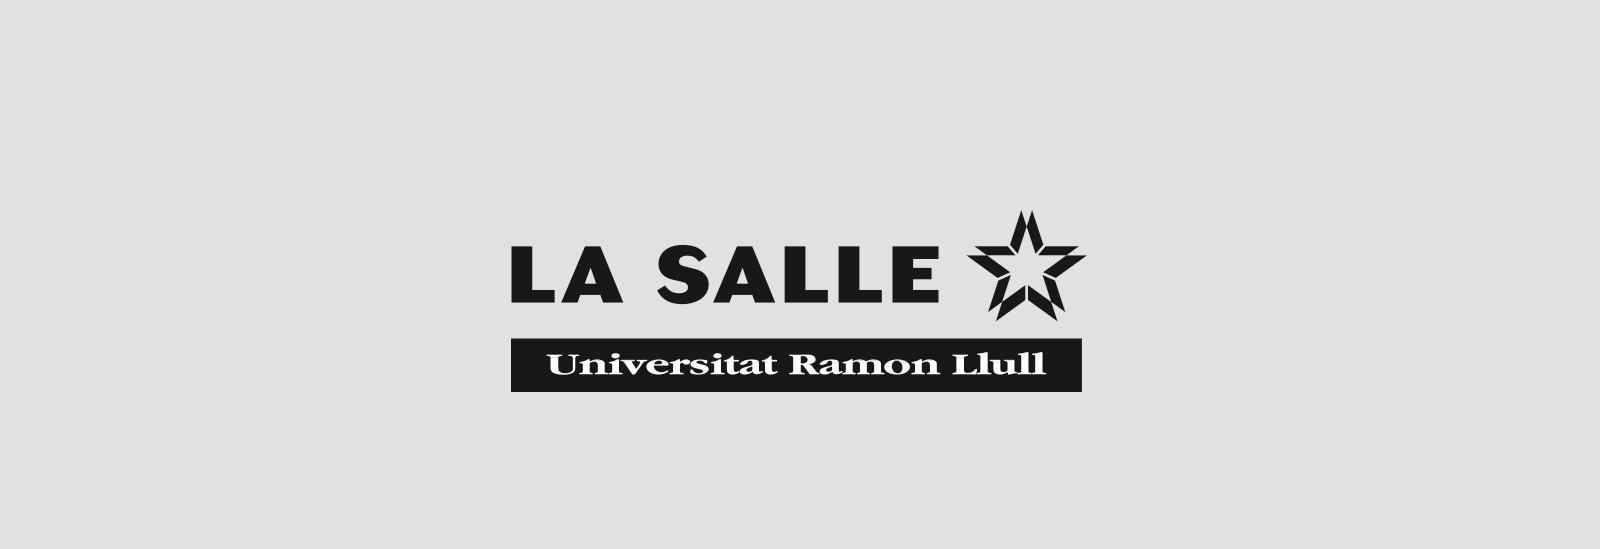 identidad-corporativa-la-salle-logo-antic